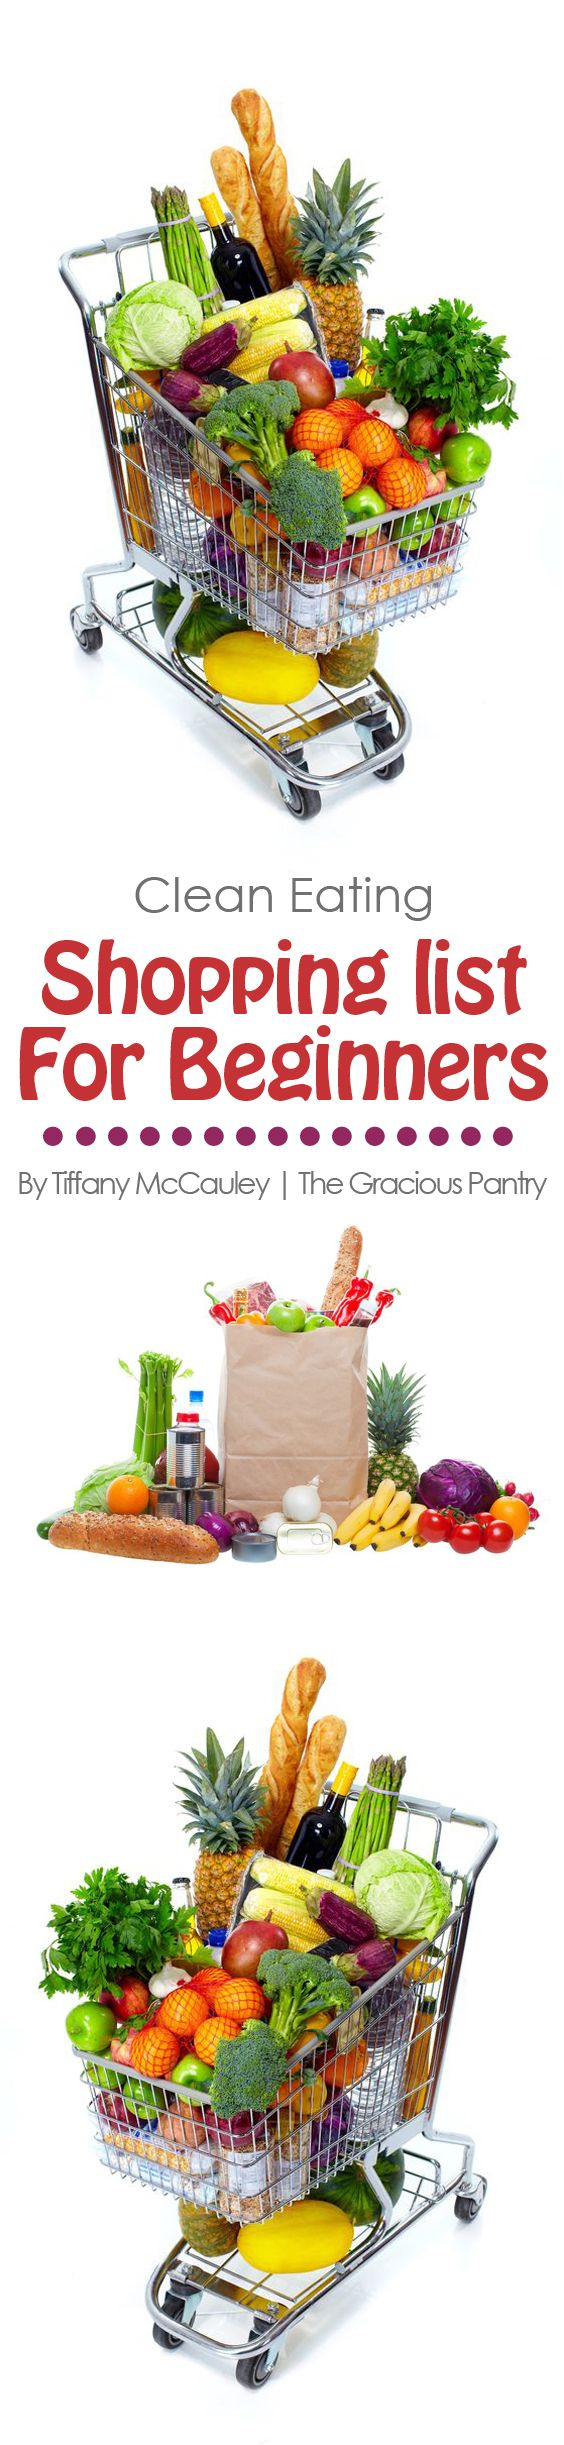 Just getting started with clean eating or need to get back on track? This shopping list can help you navigate the grocery store for clean eating!